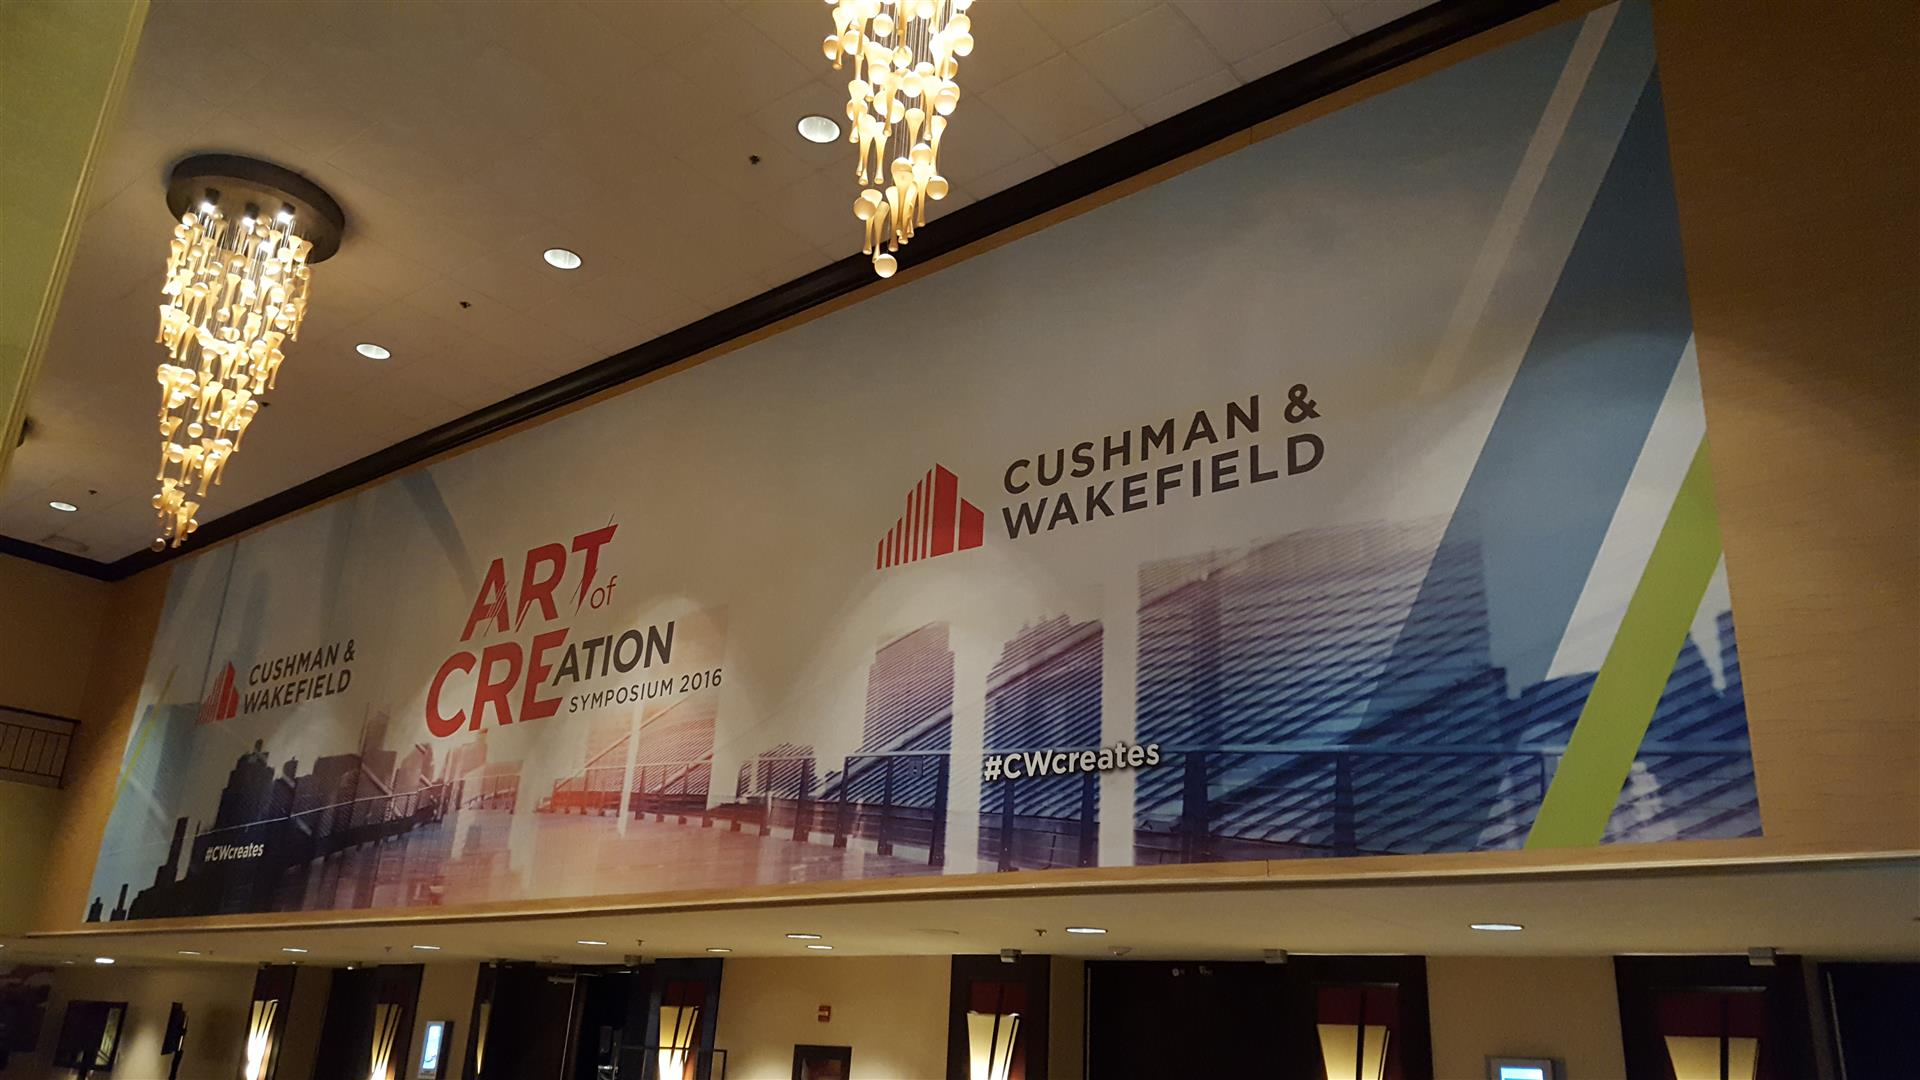 Cushman & Wakefield Wall Sign